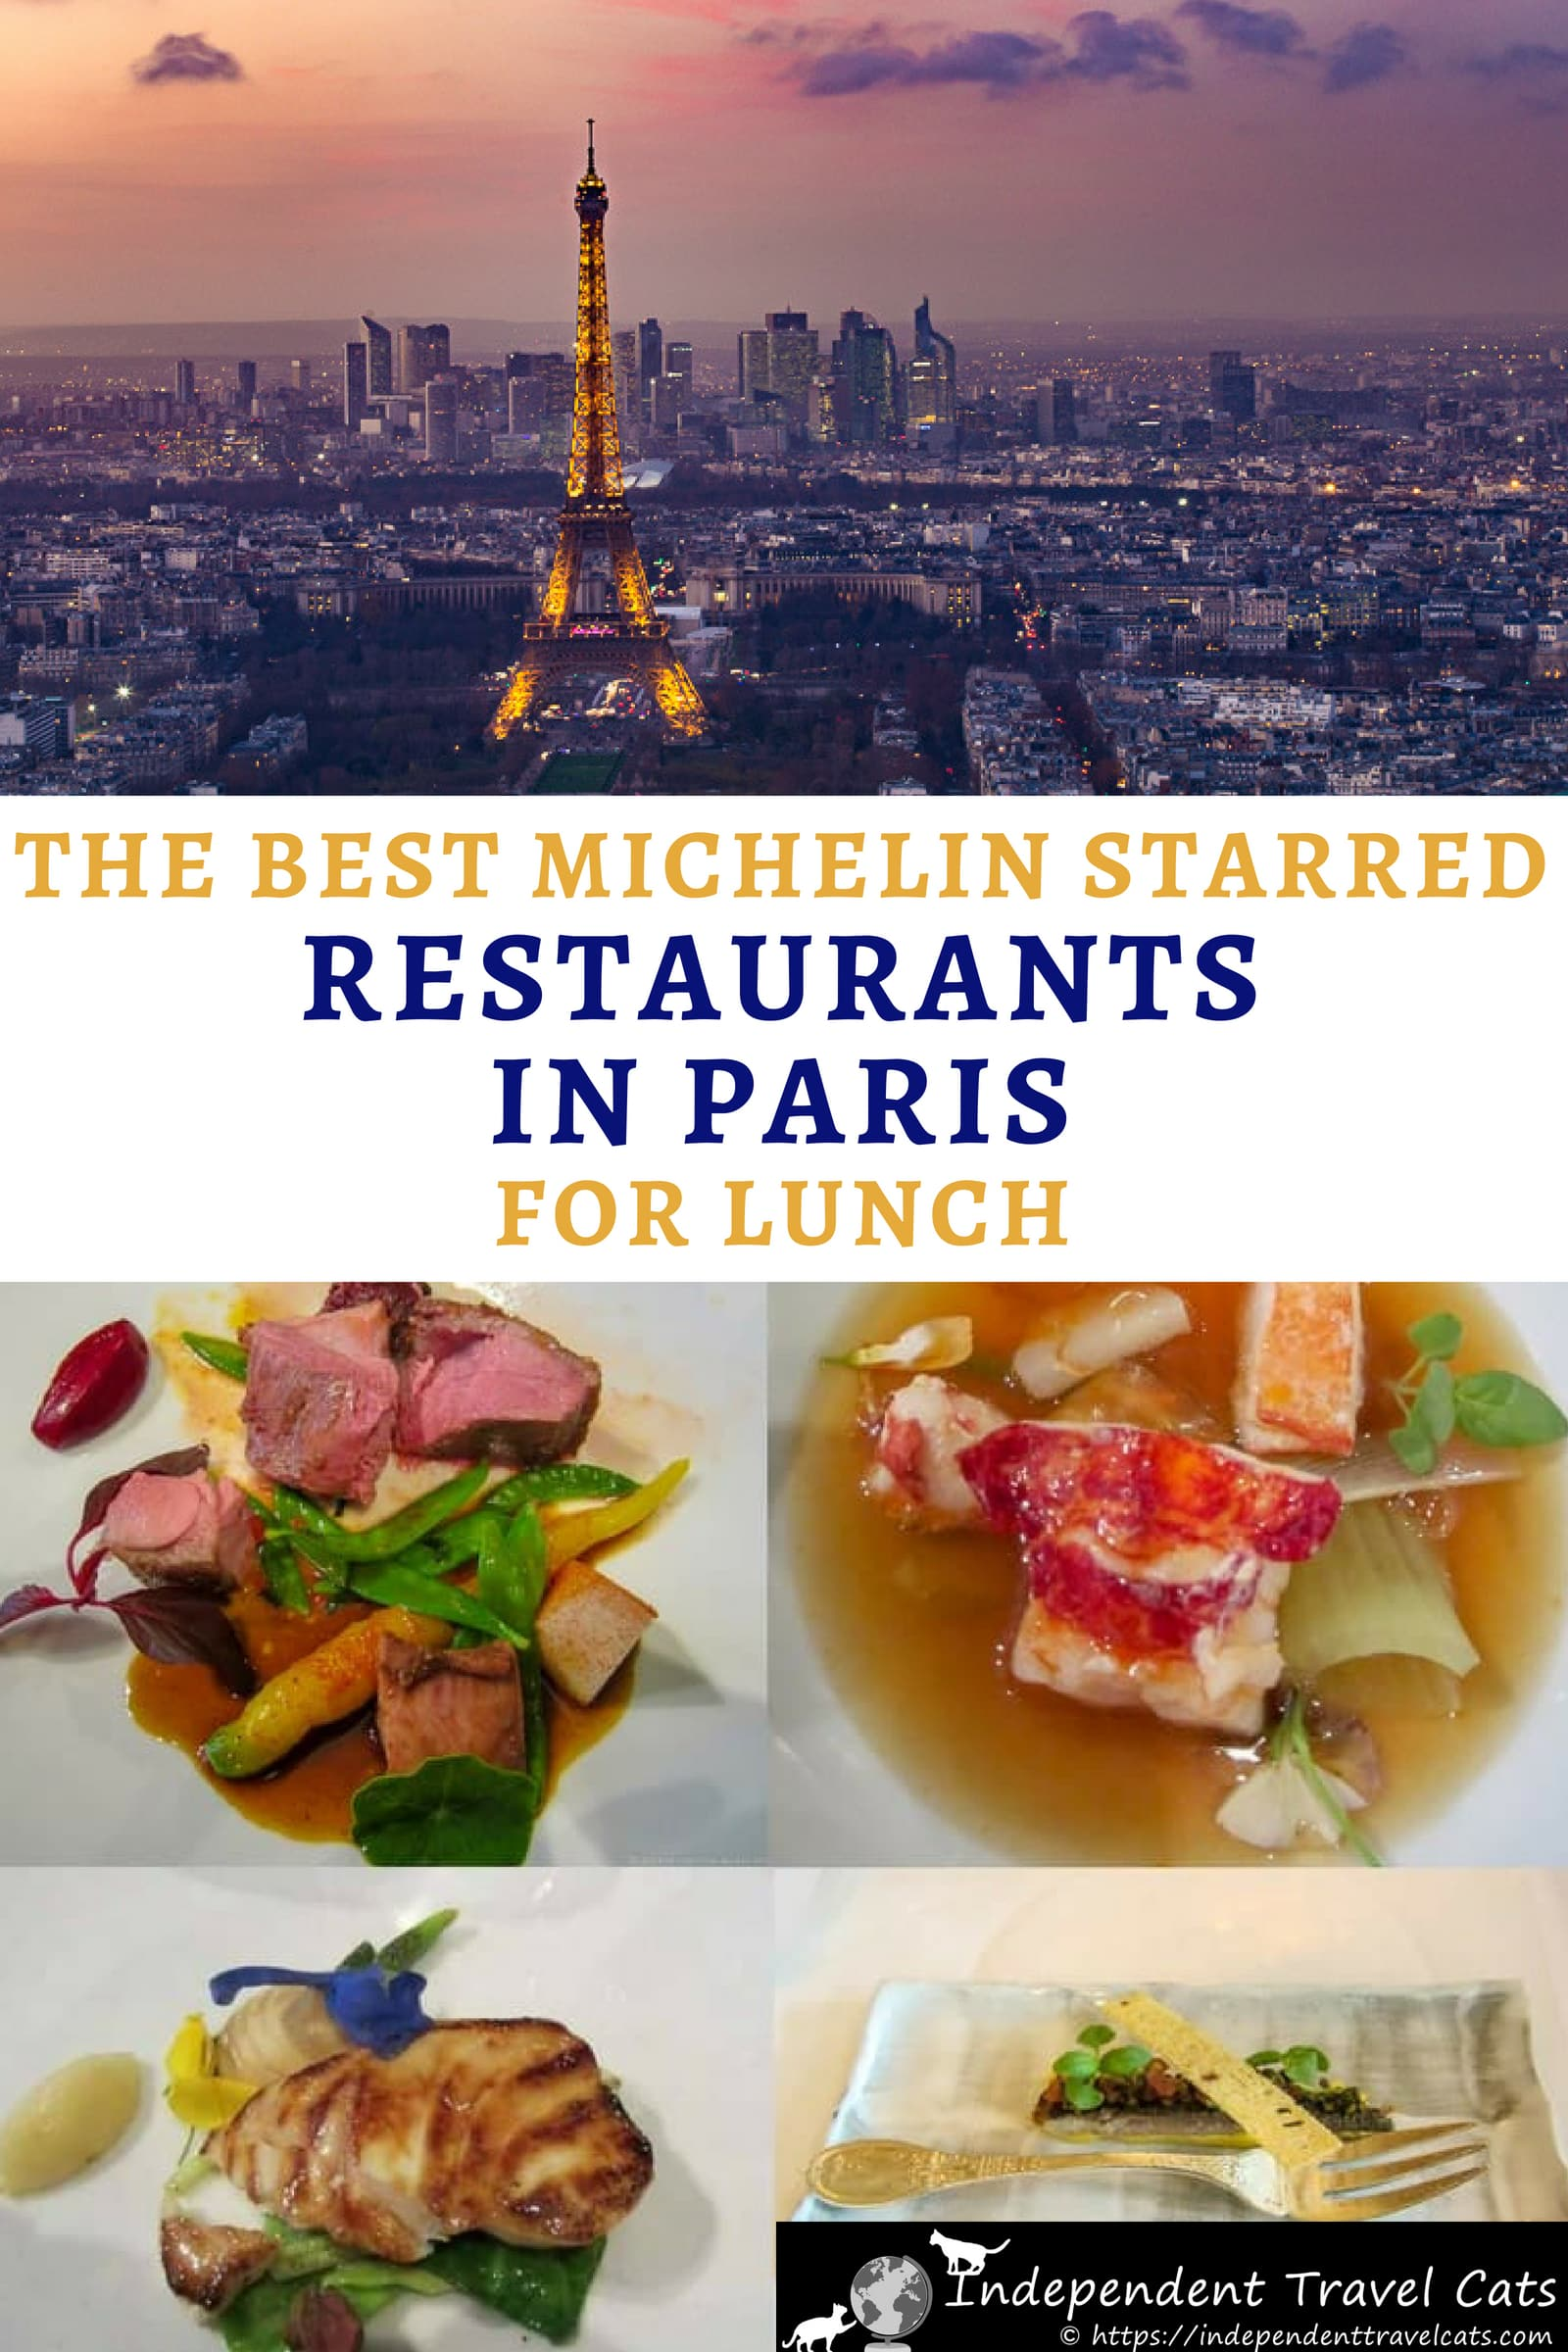 A guide to the best restaurants in Paris for lunch. Here is a list of 24 Michelin-starred restaurants in Paris you might want to consider for a lunch splurge during a visit. We have chosen Michelin starred restaurants offering less expensive lunch menus (compared to the dinner menus) and that start at 35€ per person. We also share tips about how to make restaurant reservations in Paris and about dining in Paris. #Paris #Parisresturants #Parisdiningguide #finedining #foodguide #Michelin #France